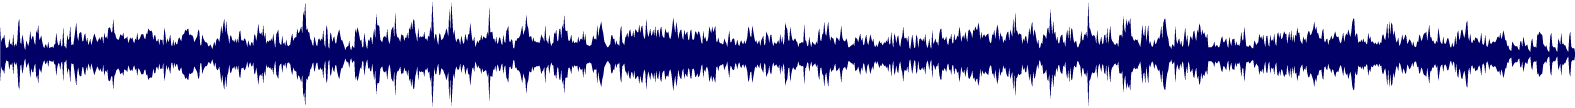 waveform of track #75480